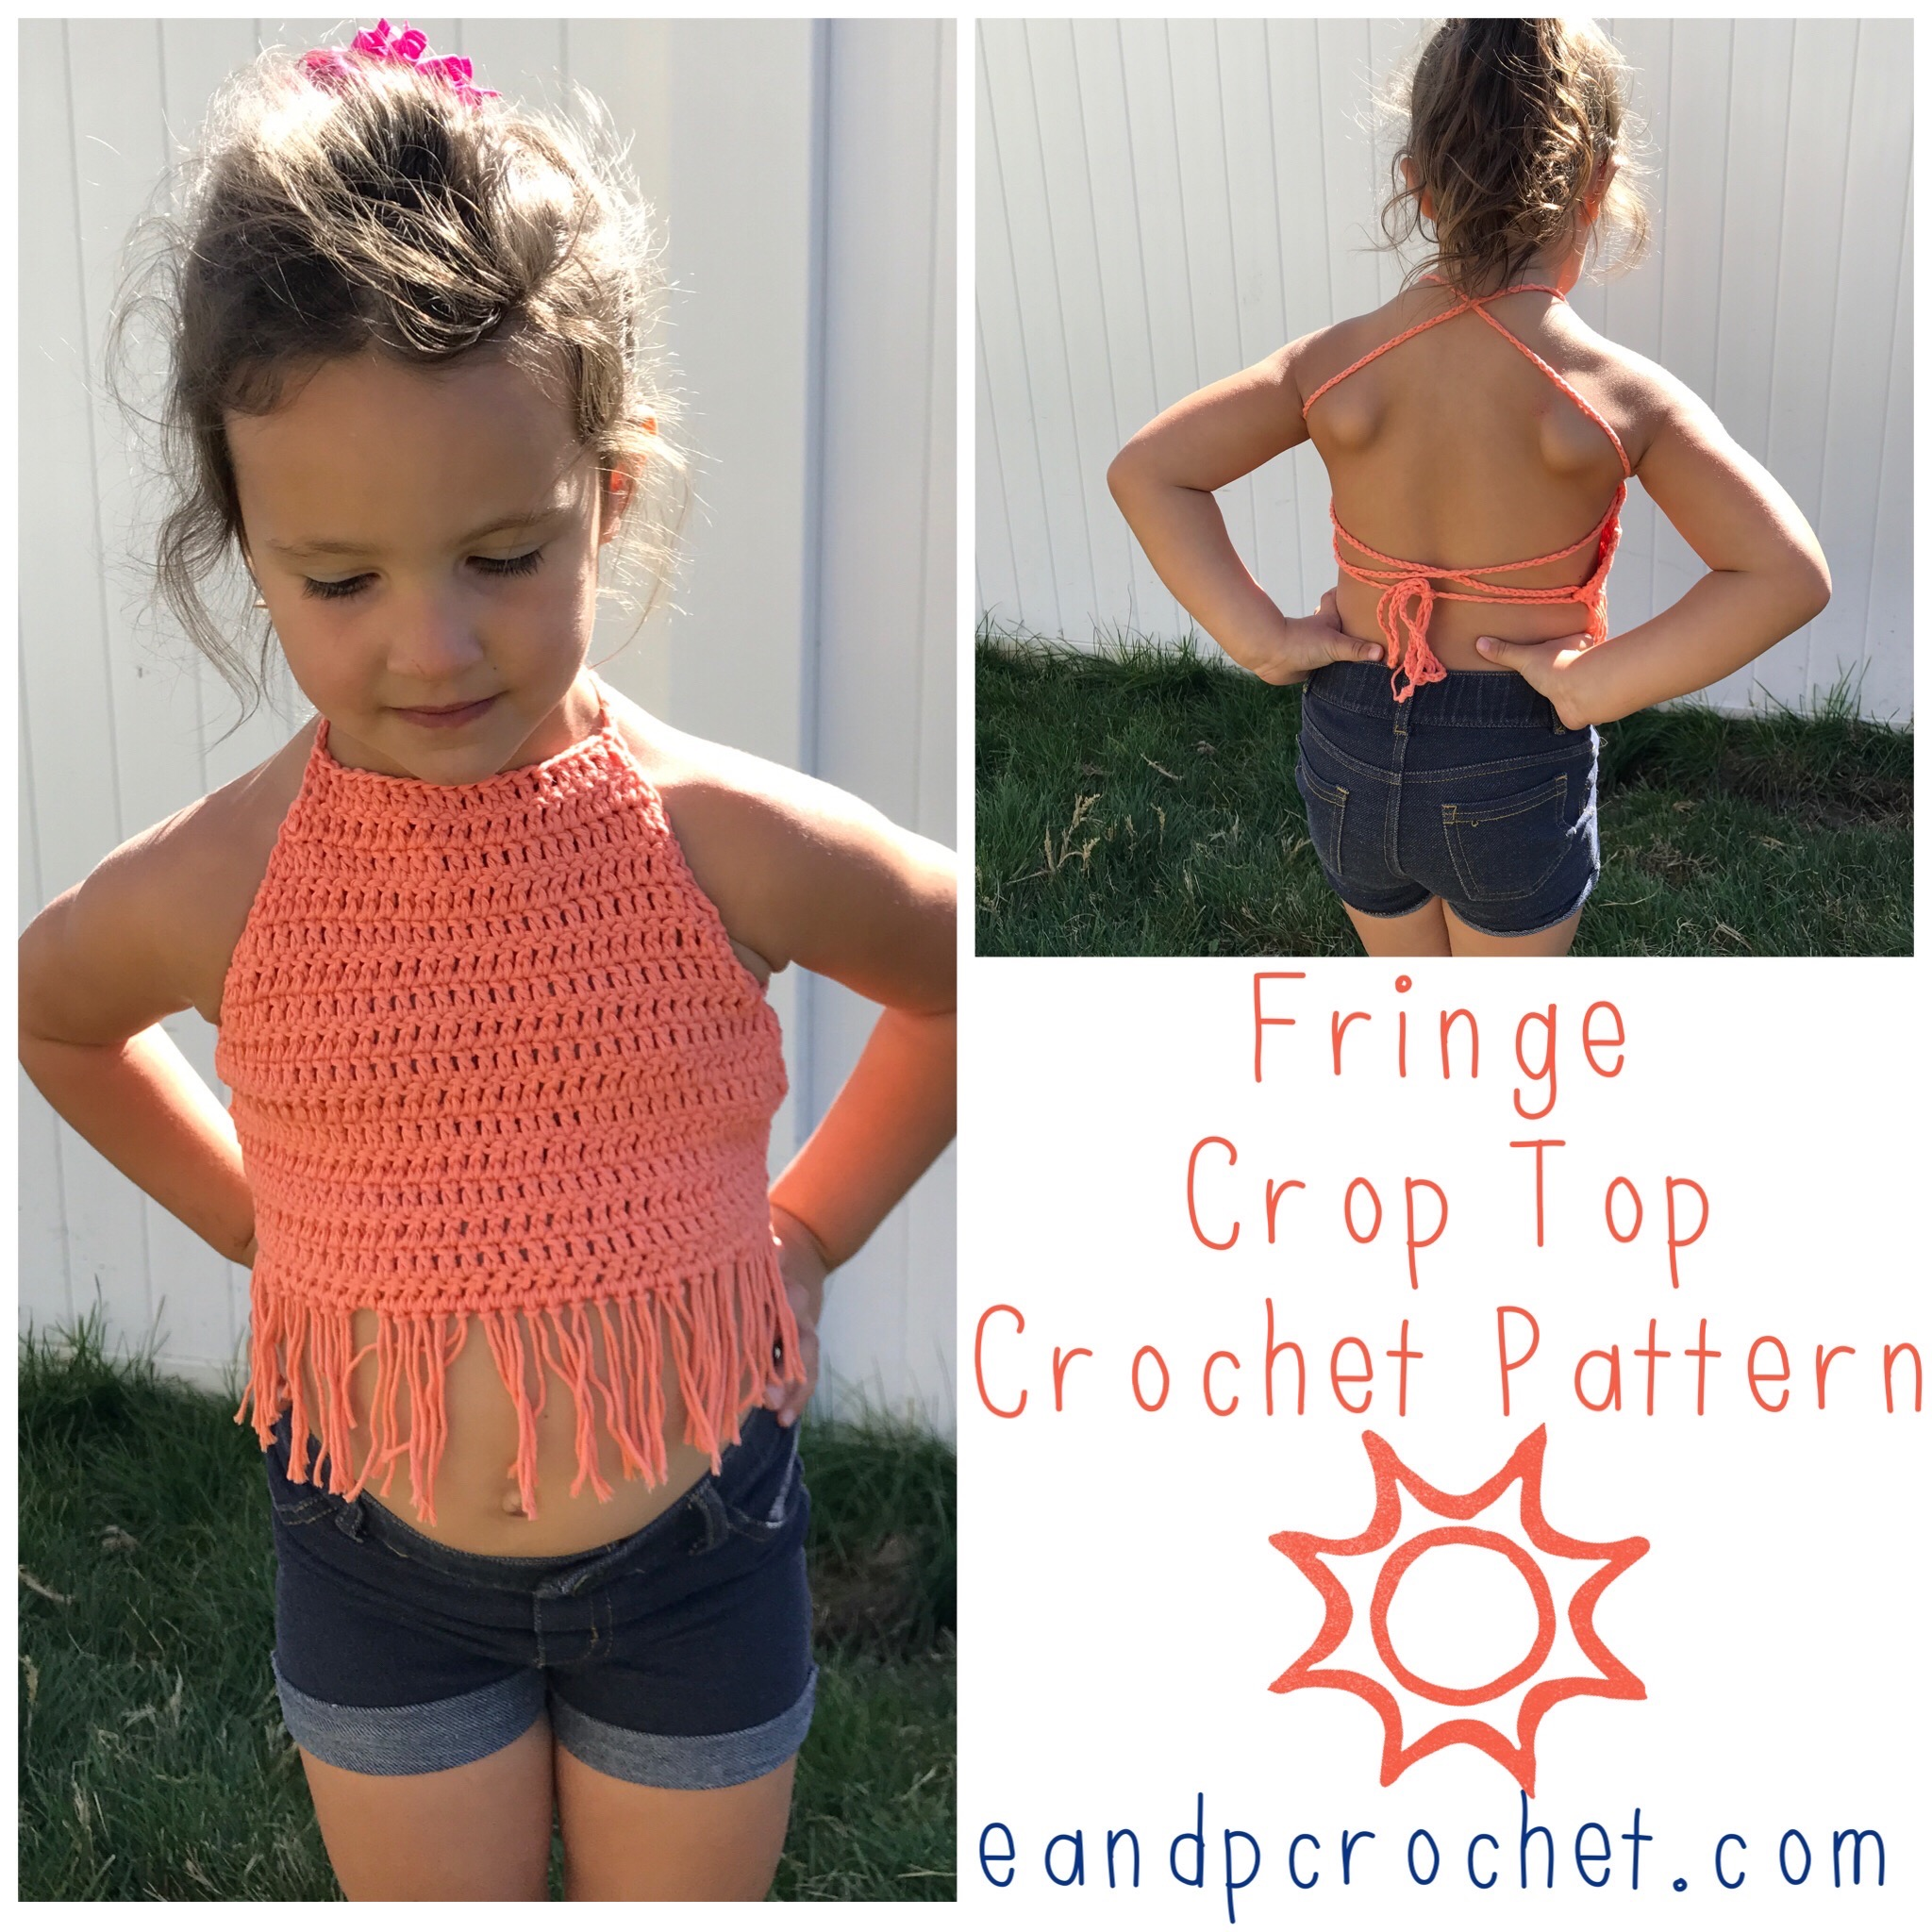 50ed11c869d2dd I was recently requested to write up a pattern for a kids fringe crop top!  Even though it s only 50 degrees out today it s hot in other parts of the  world ...